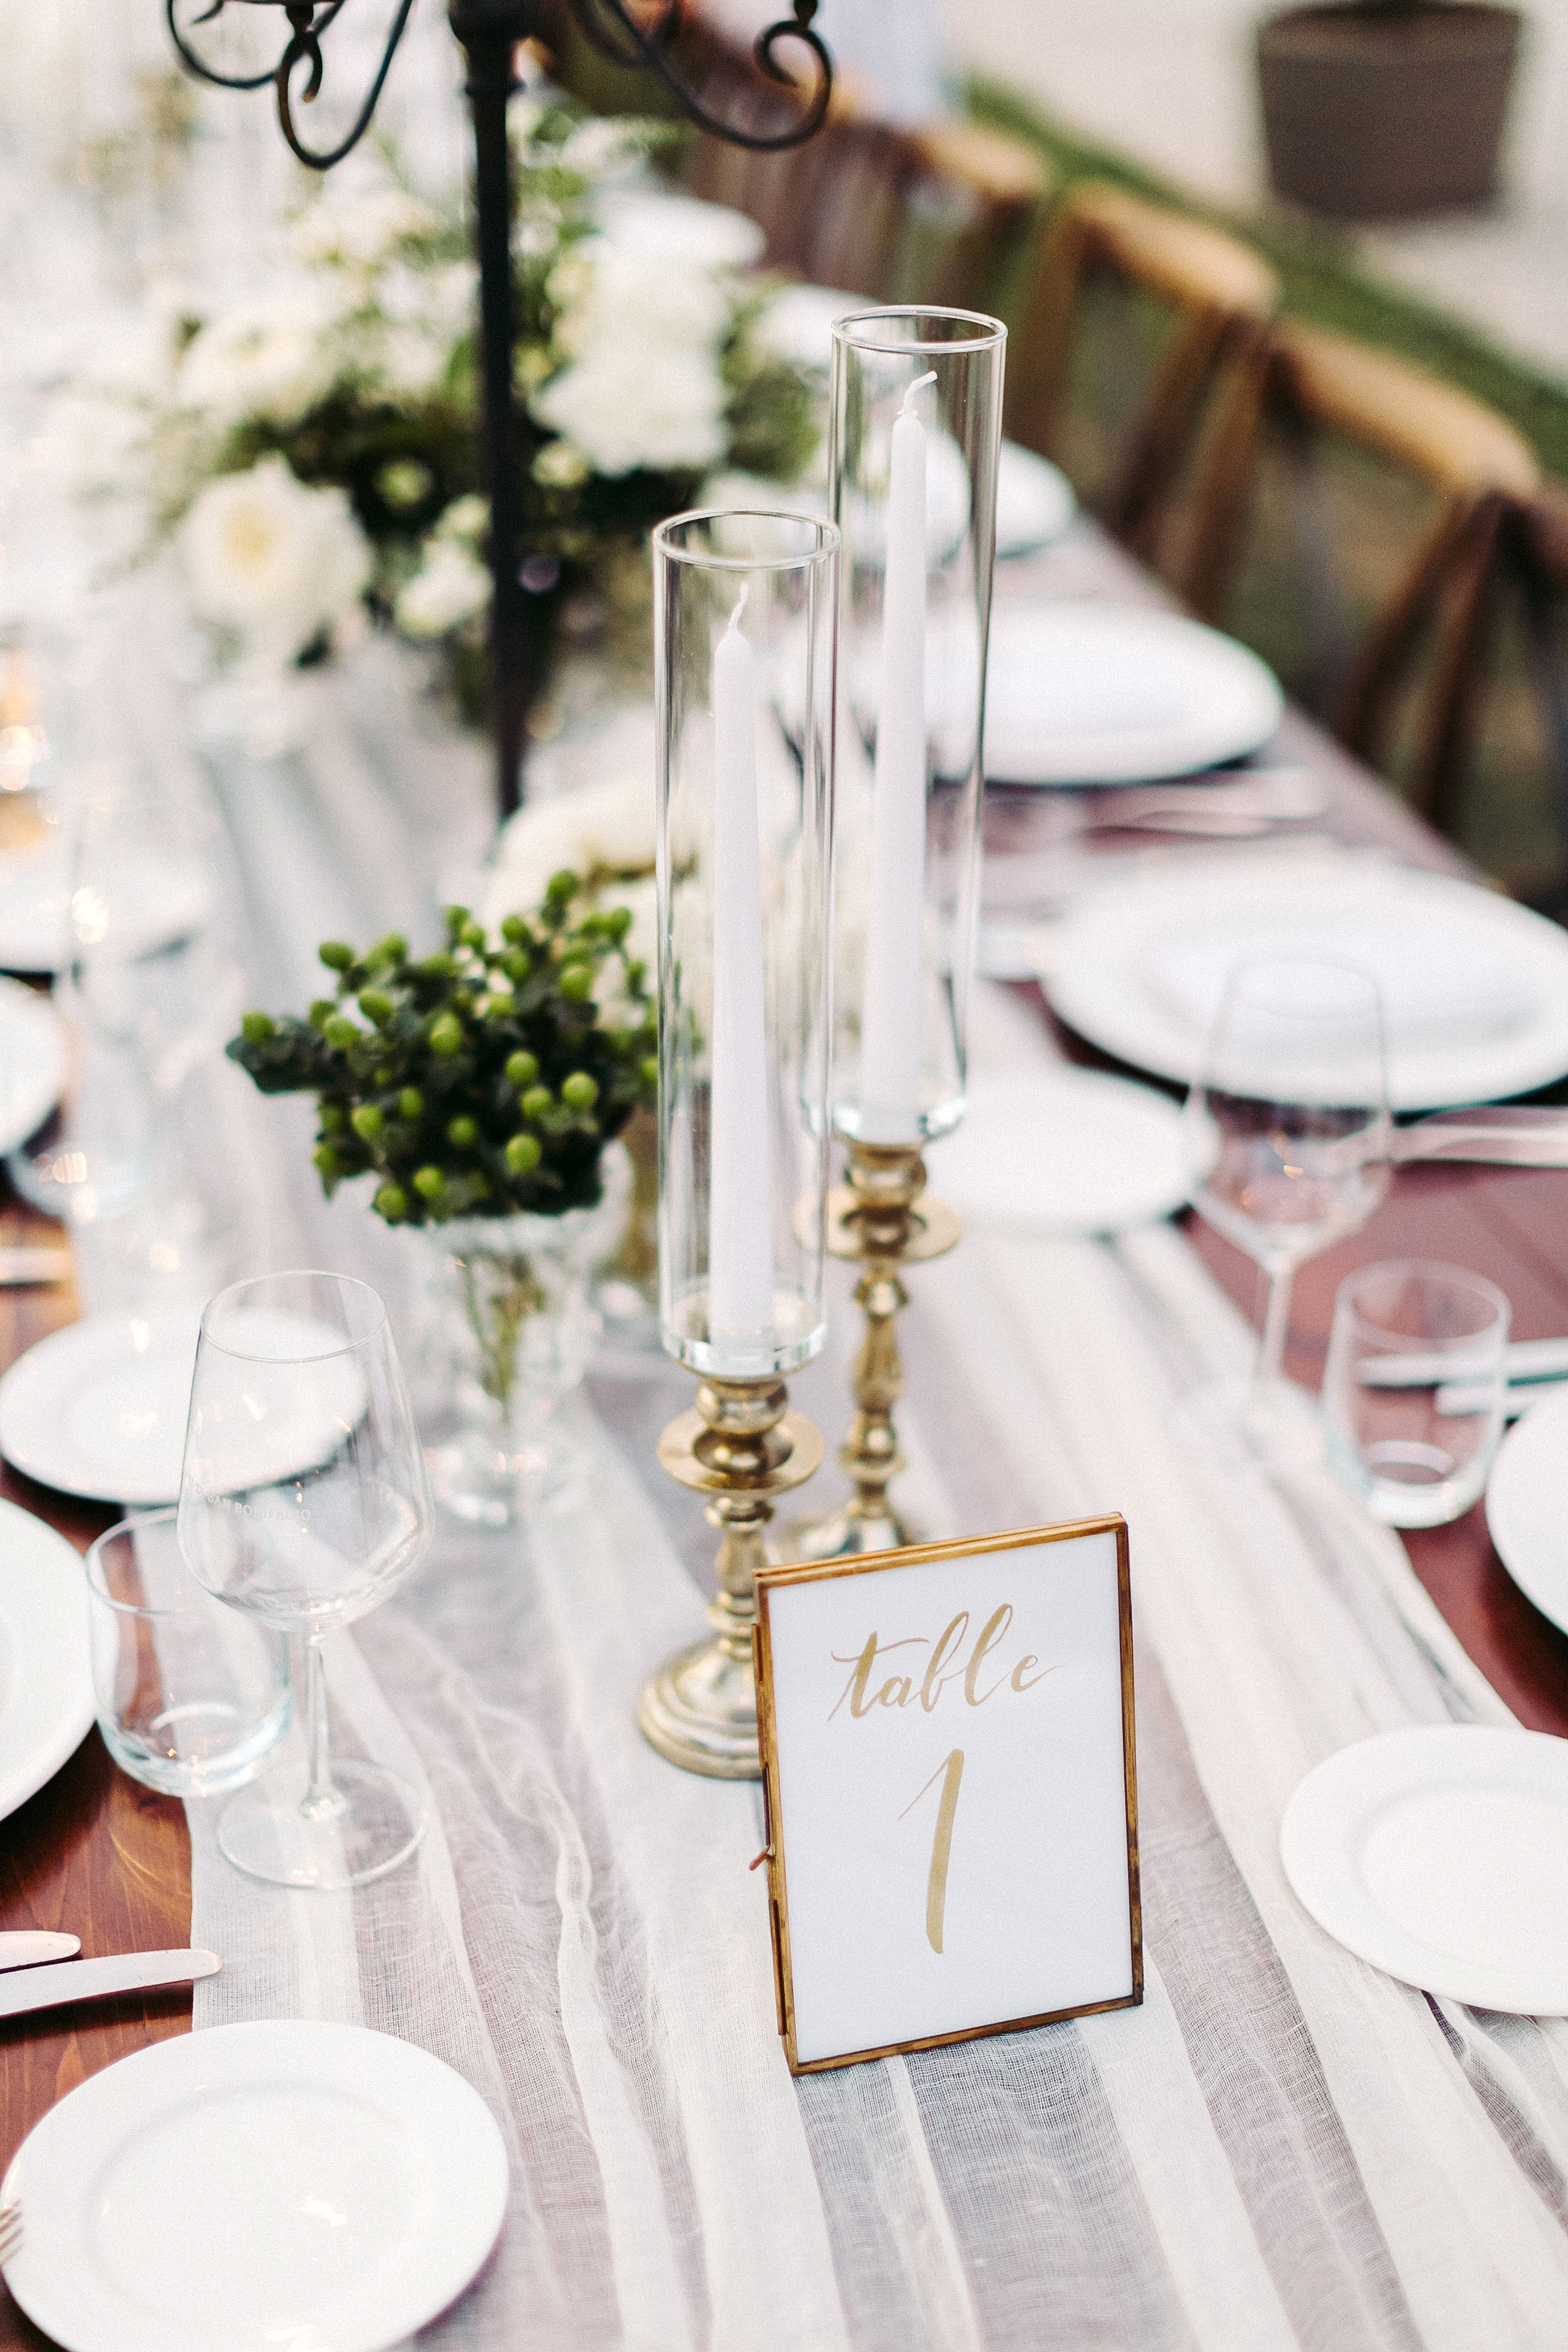 kseniya sadhir wedding table numbers centerpieces tablescape and place settings